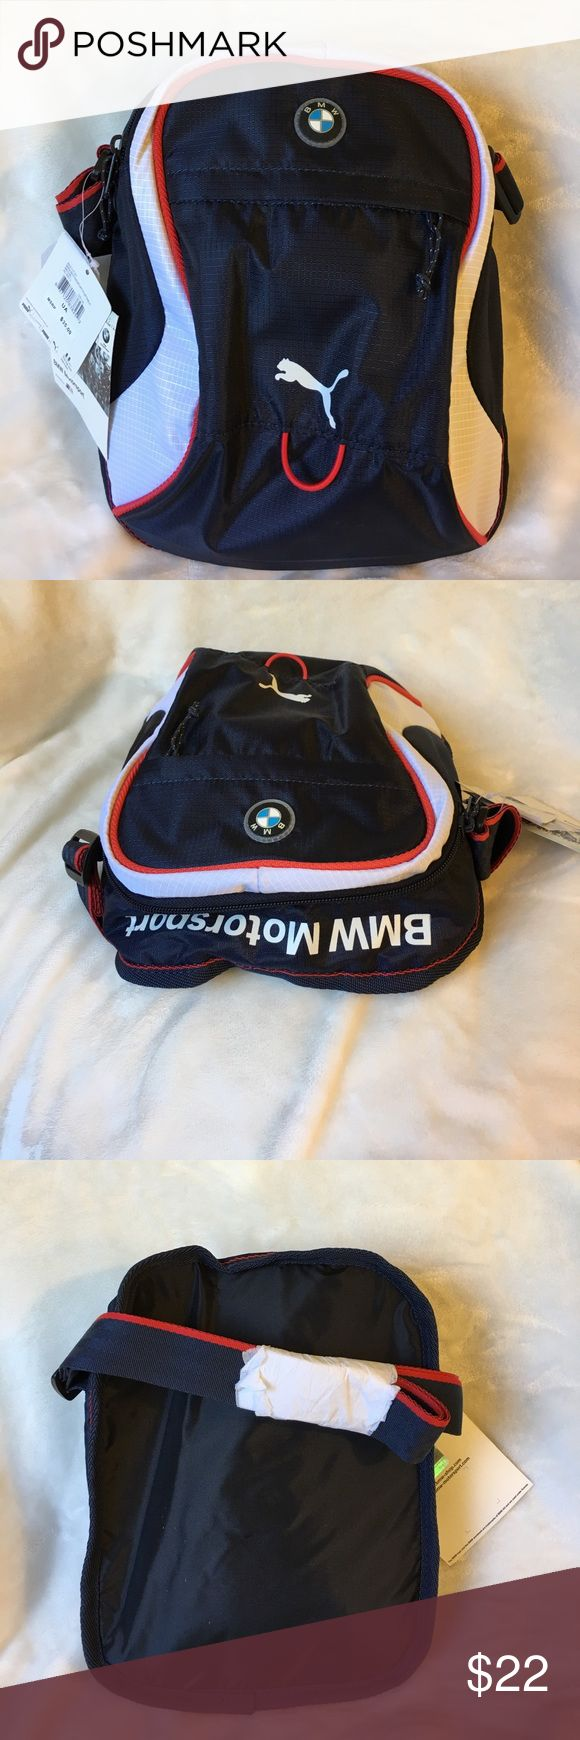 NWT Unisex BMW/Puma sport bag Brand new Unisex BMW/Puma sport bag, has a padded compartment that fits an iPad, great lightweight, on the go bag, smoke free home BMW Motosport Bags Messenger Bags